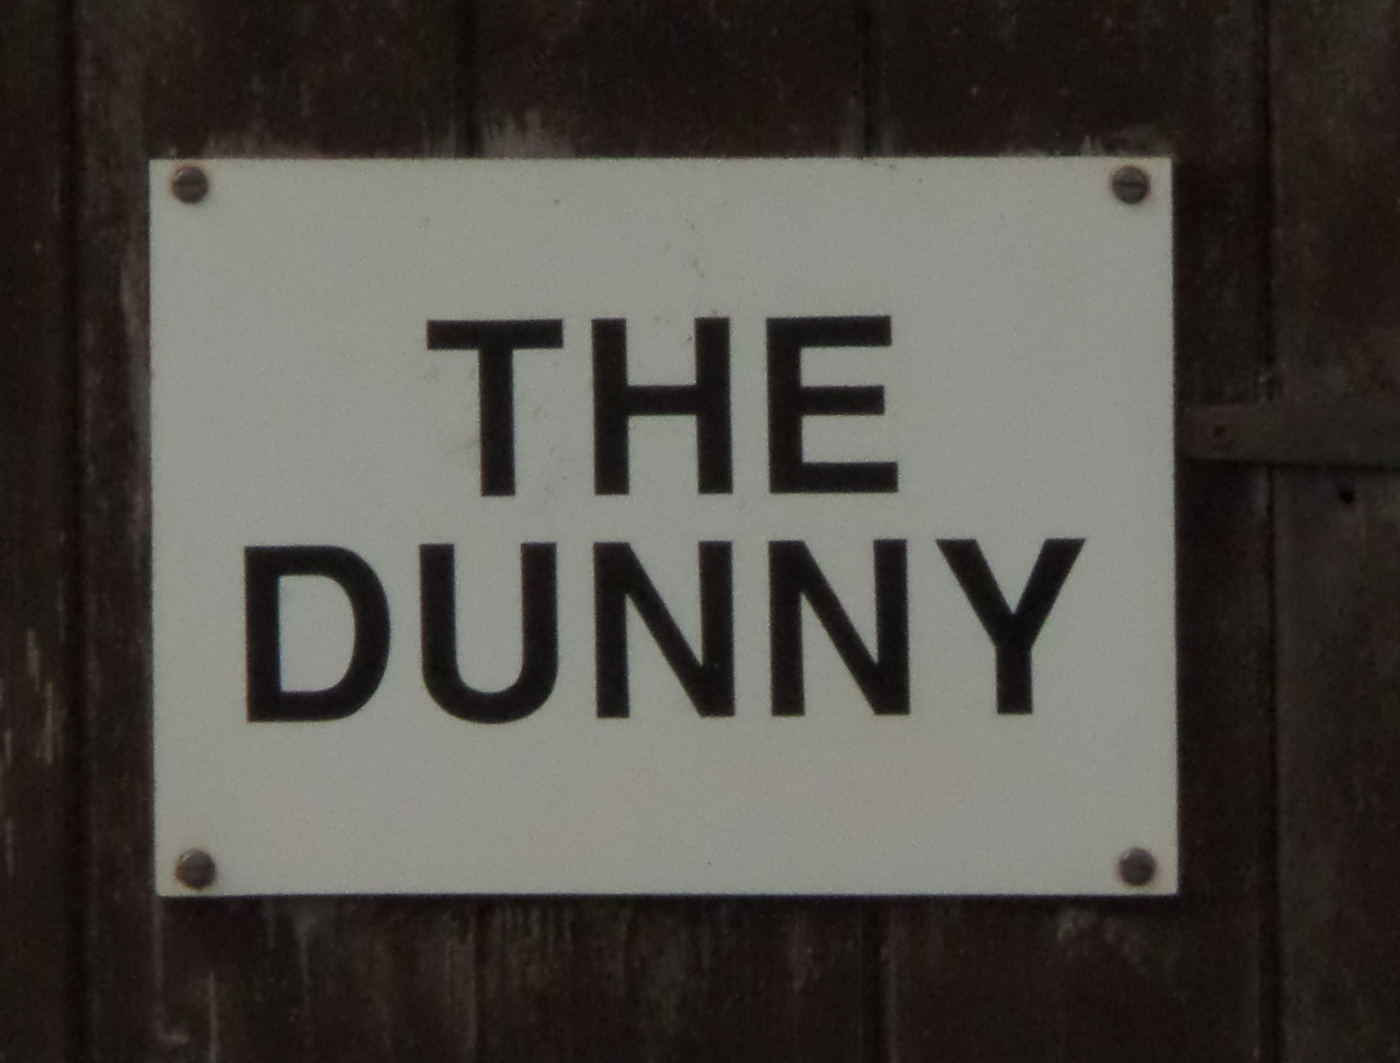 The Dunny